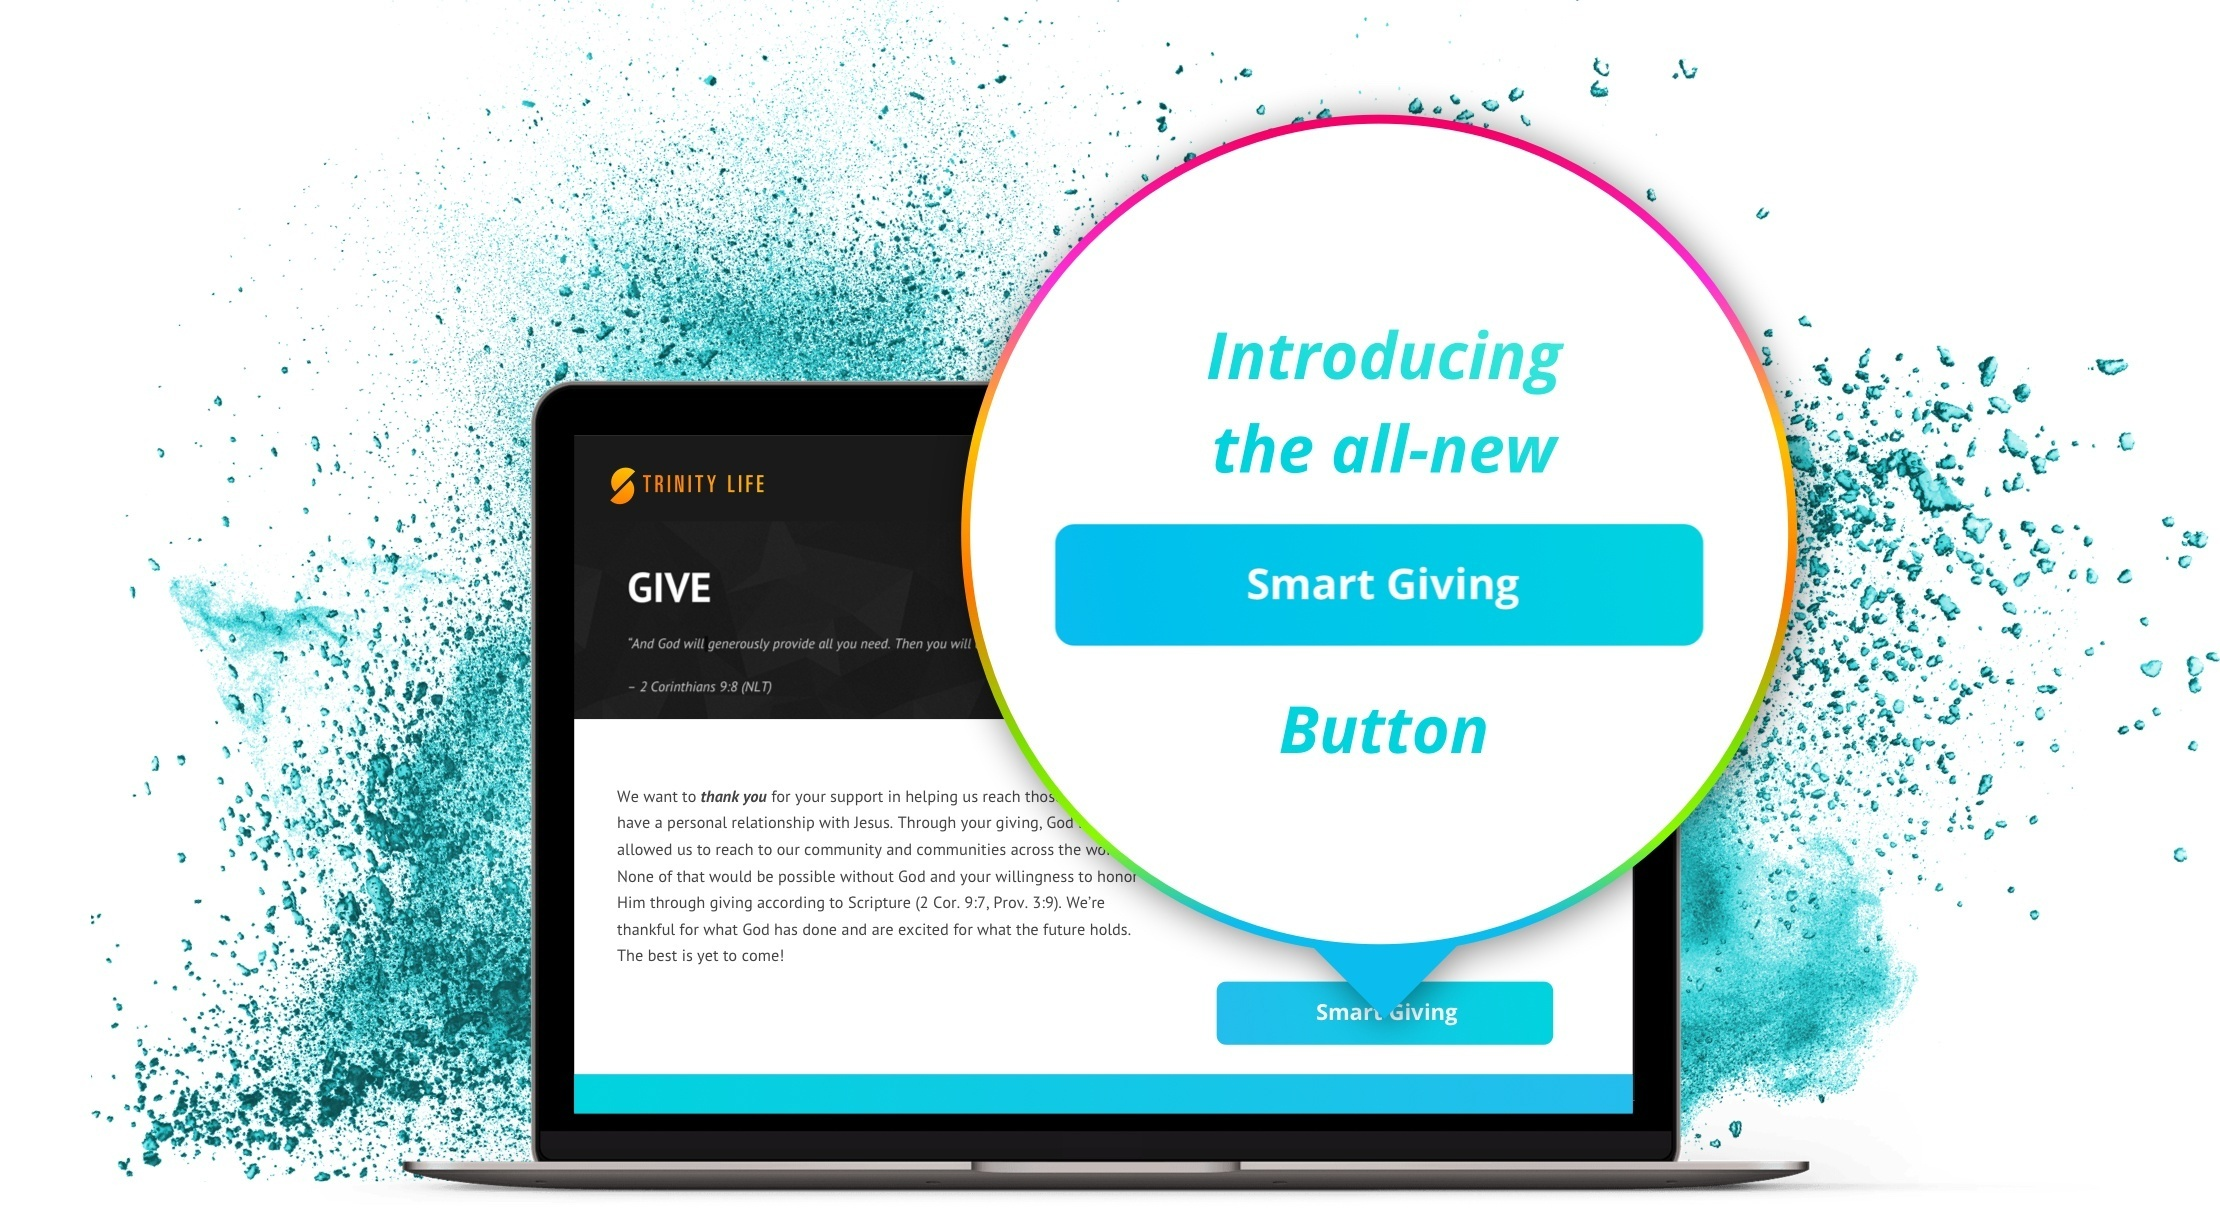 Now churches can give online through the Smart Giving Button!